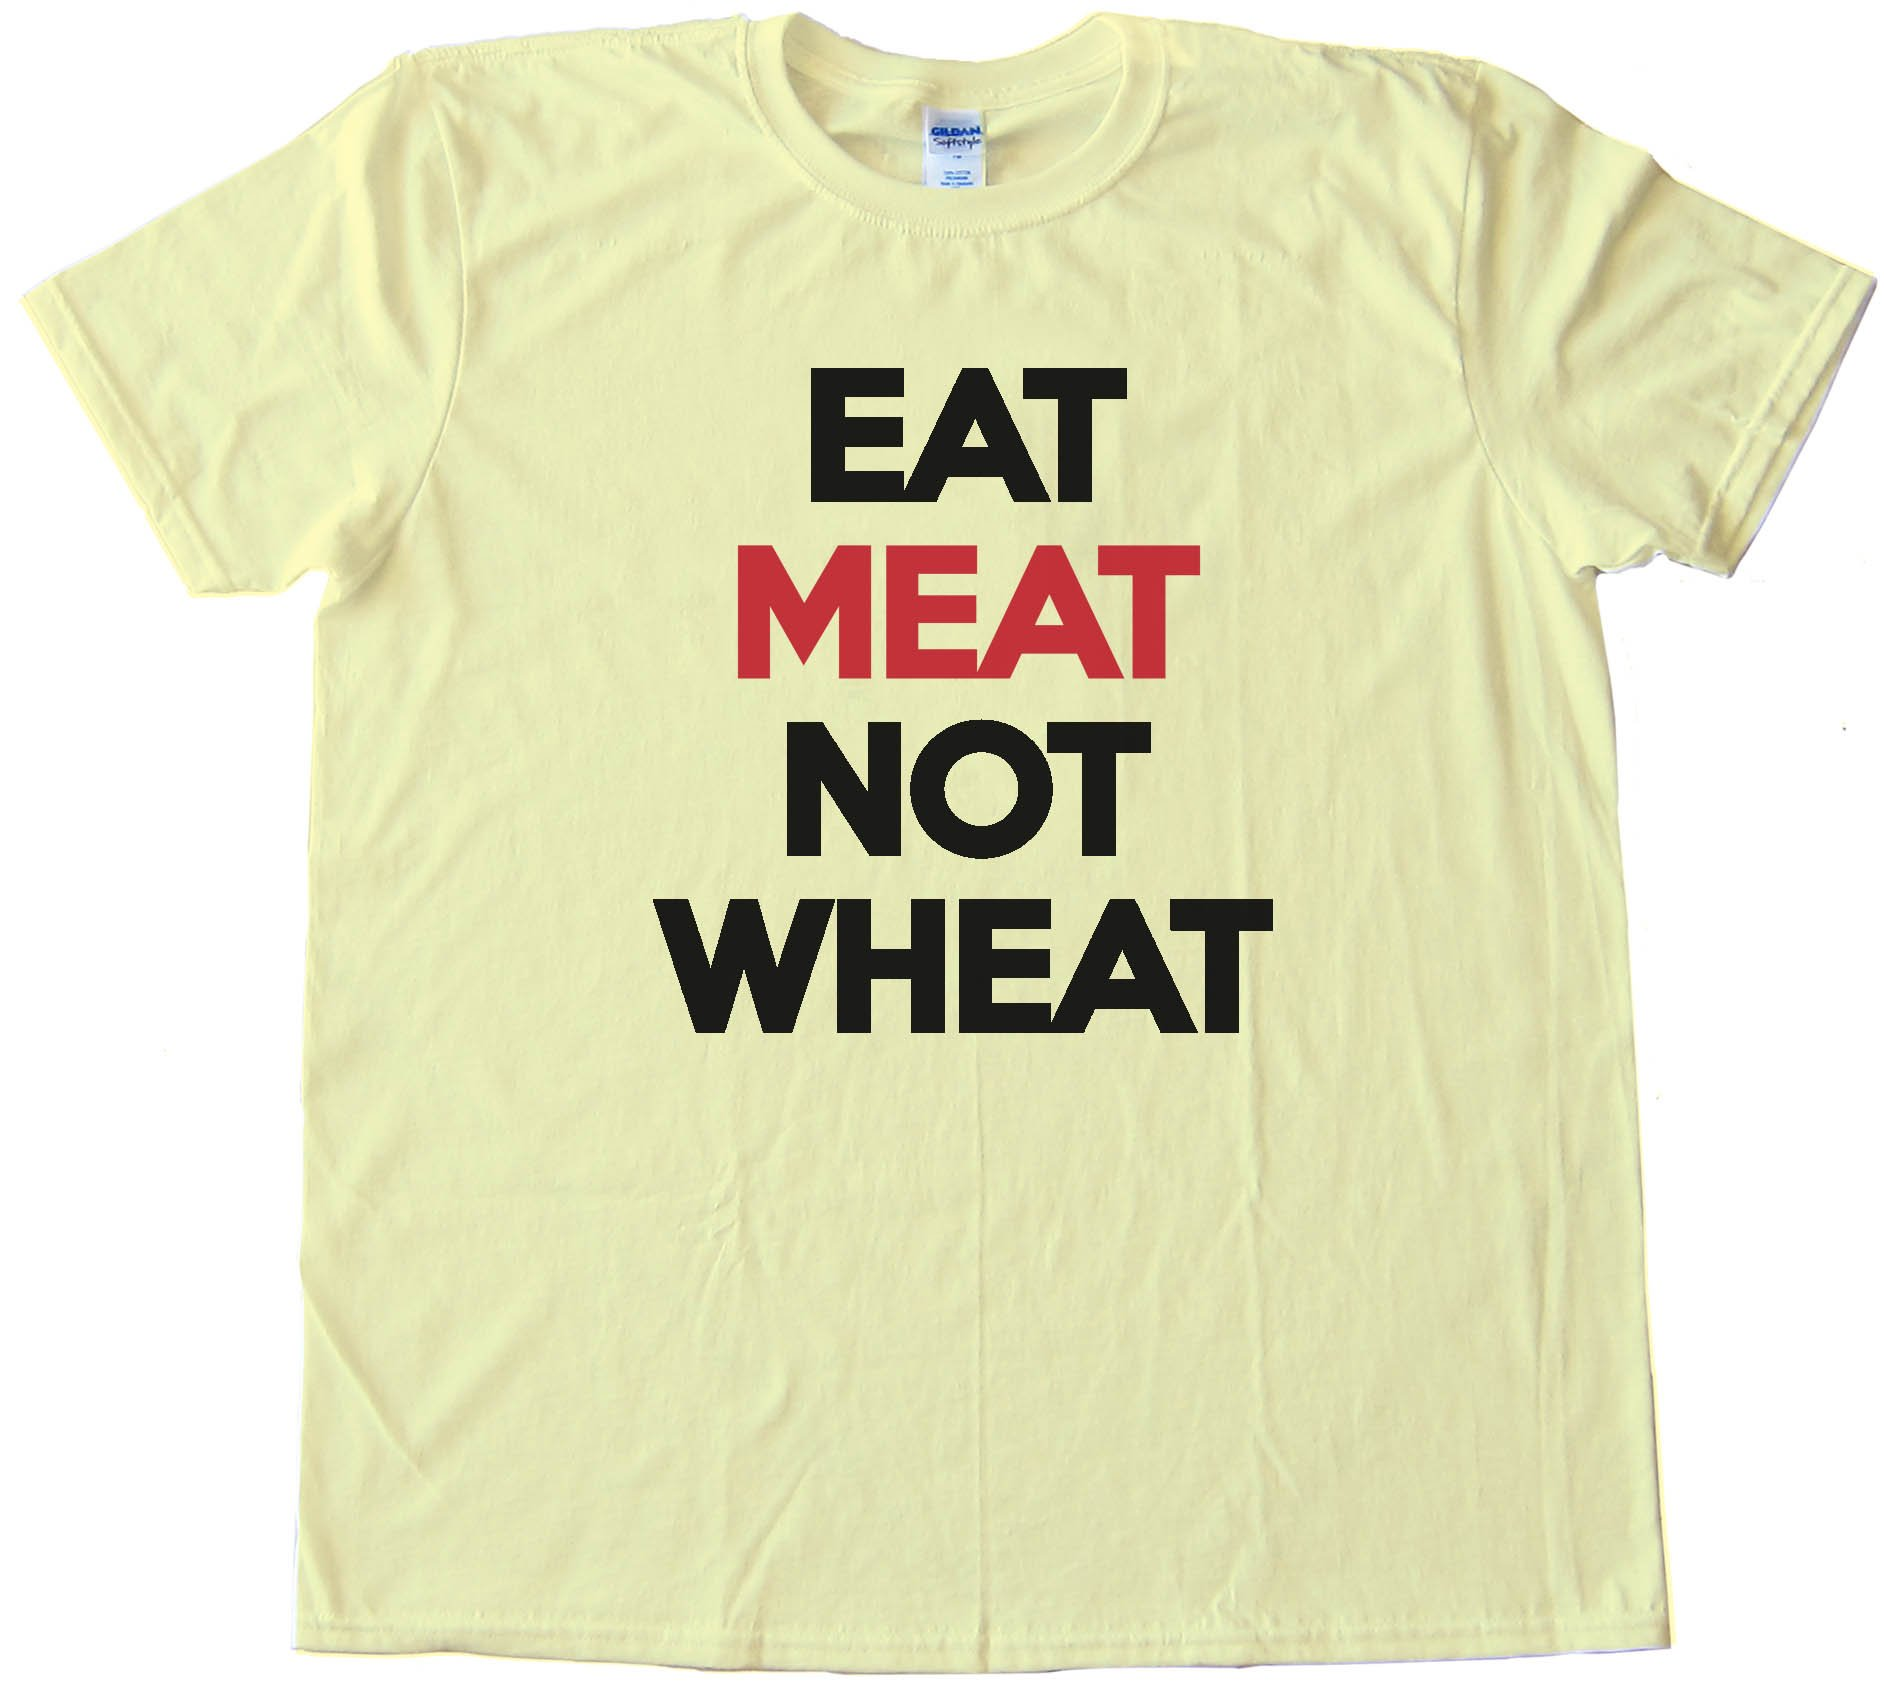 Eat Meat Not Wheat Tee Shirt